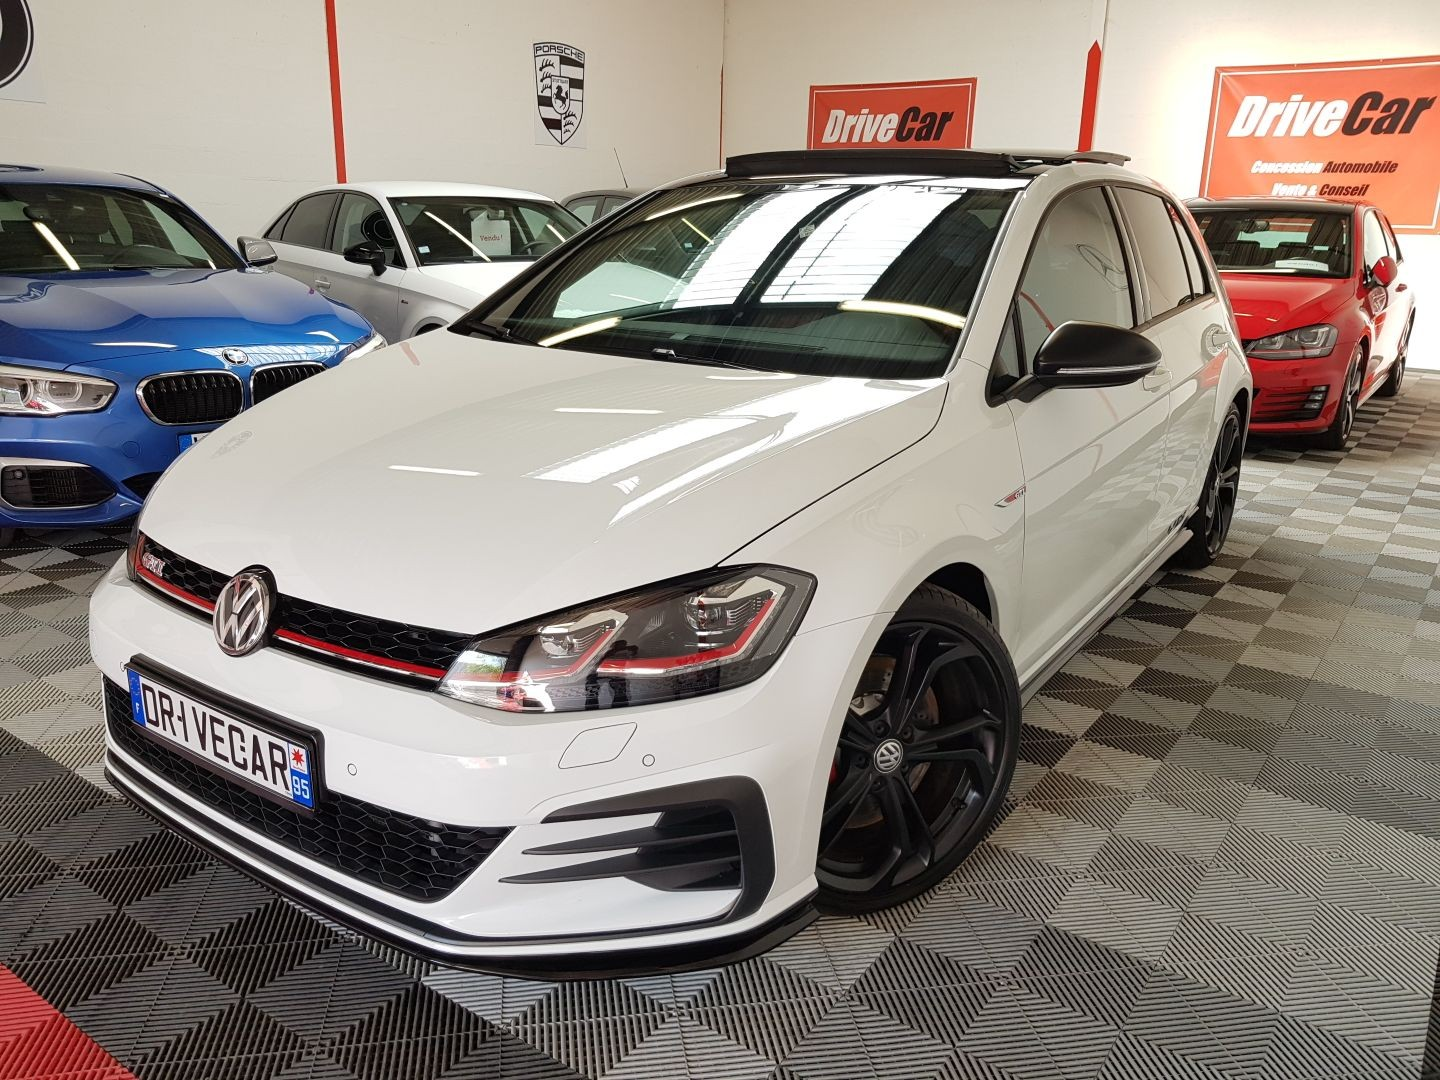 VW GOLF 7 GTI TSI 290 TCR